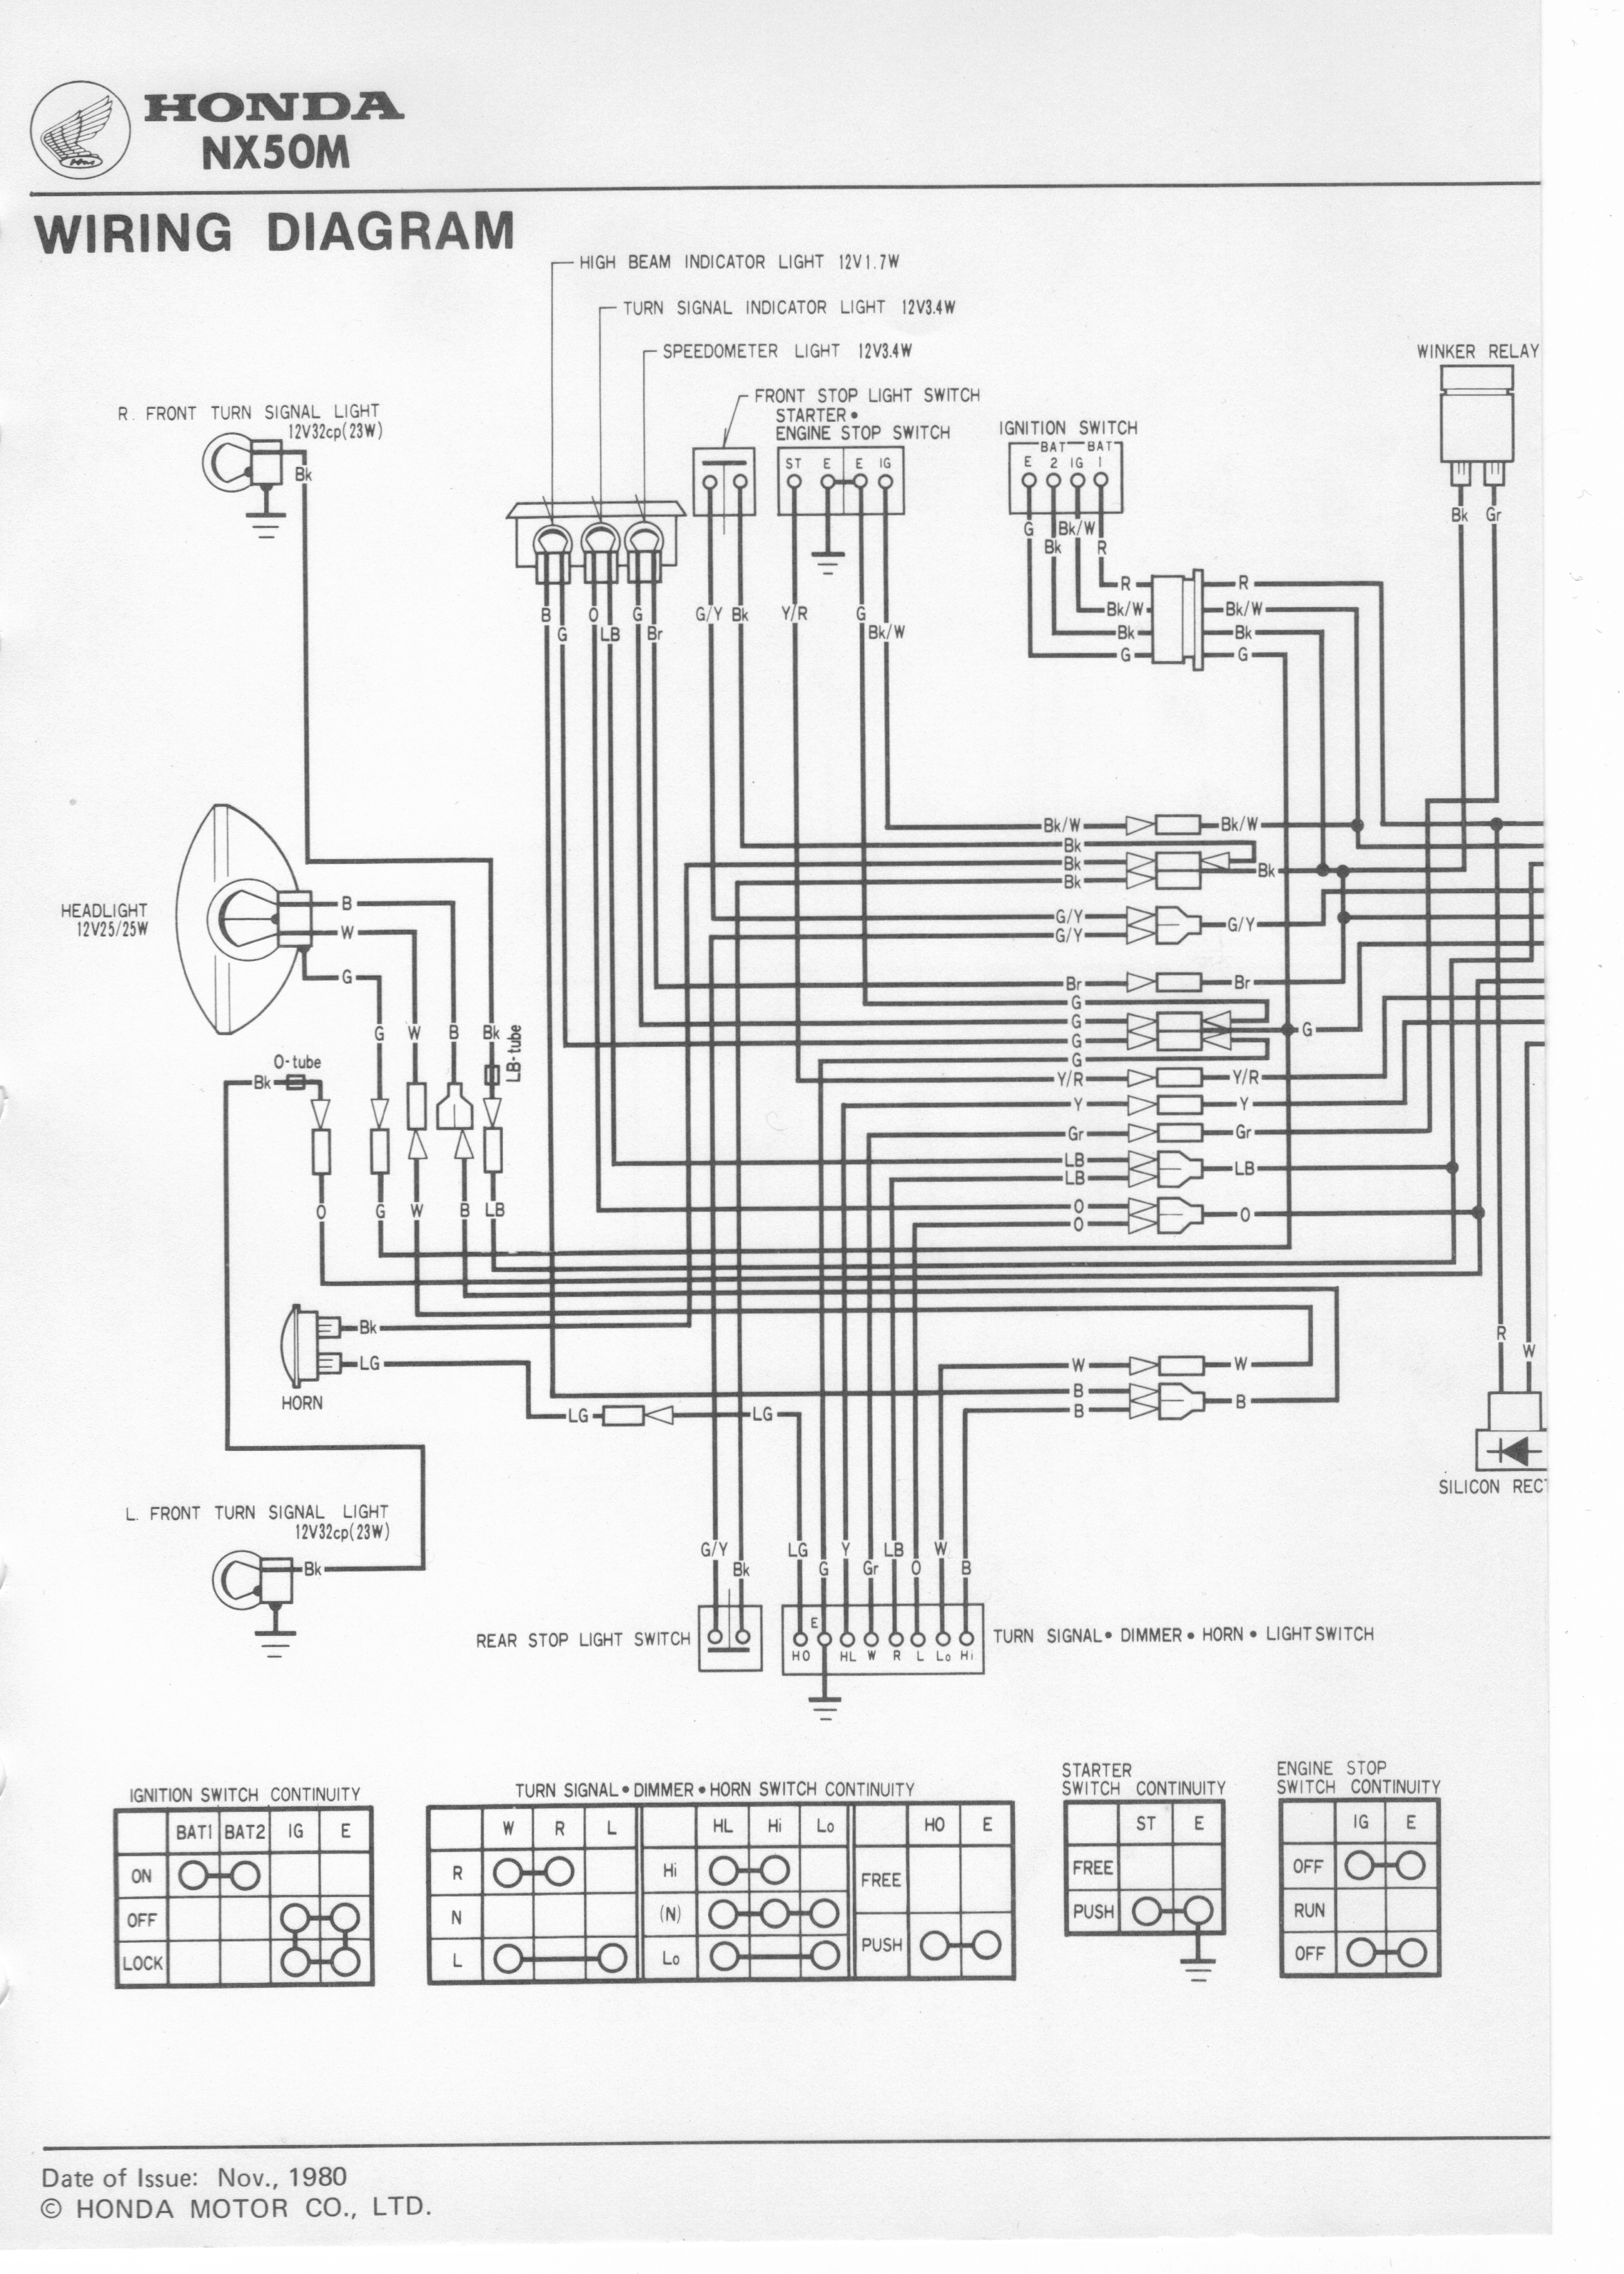 1982 honda gl1100 wiring diagram fire pump nu50m gl650i